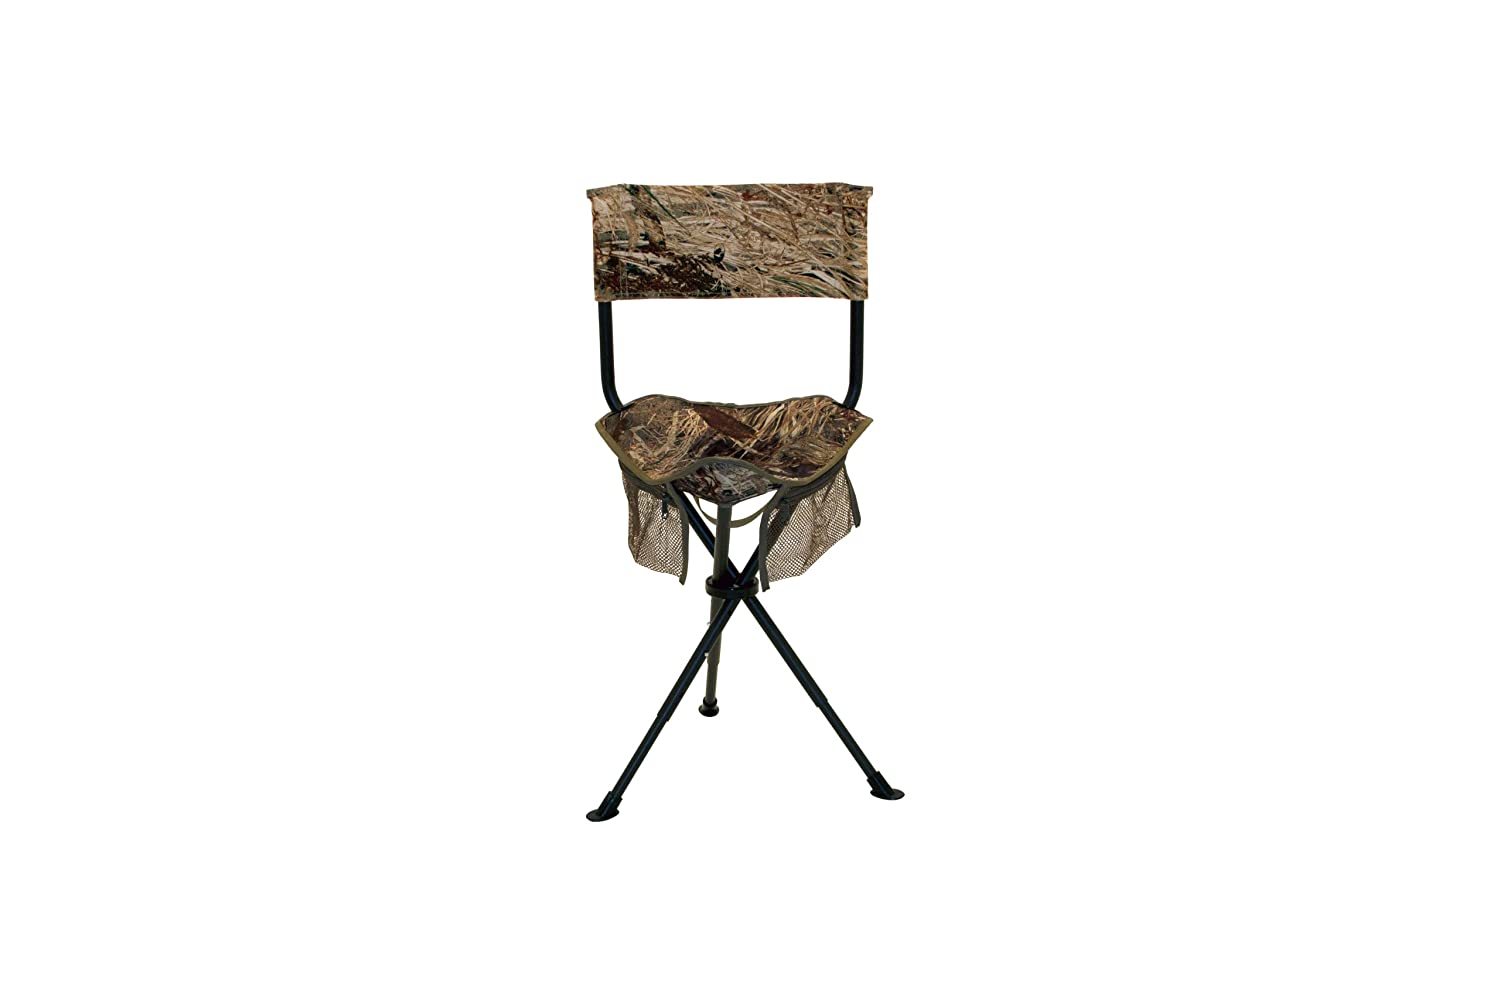 Amazon.com  TravelChair Ultimate Wingshooter Camo Folding Tripod Hunting Chair  C&ing Chairs  Sports u0026 Outdoors  sc 1 st  Amazon.com & Amazon.com : TravelChair Ultimate Wingshooter Camo Folding Tripod ...